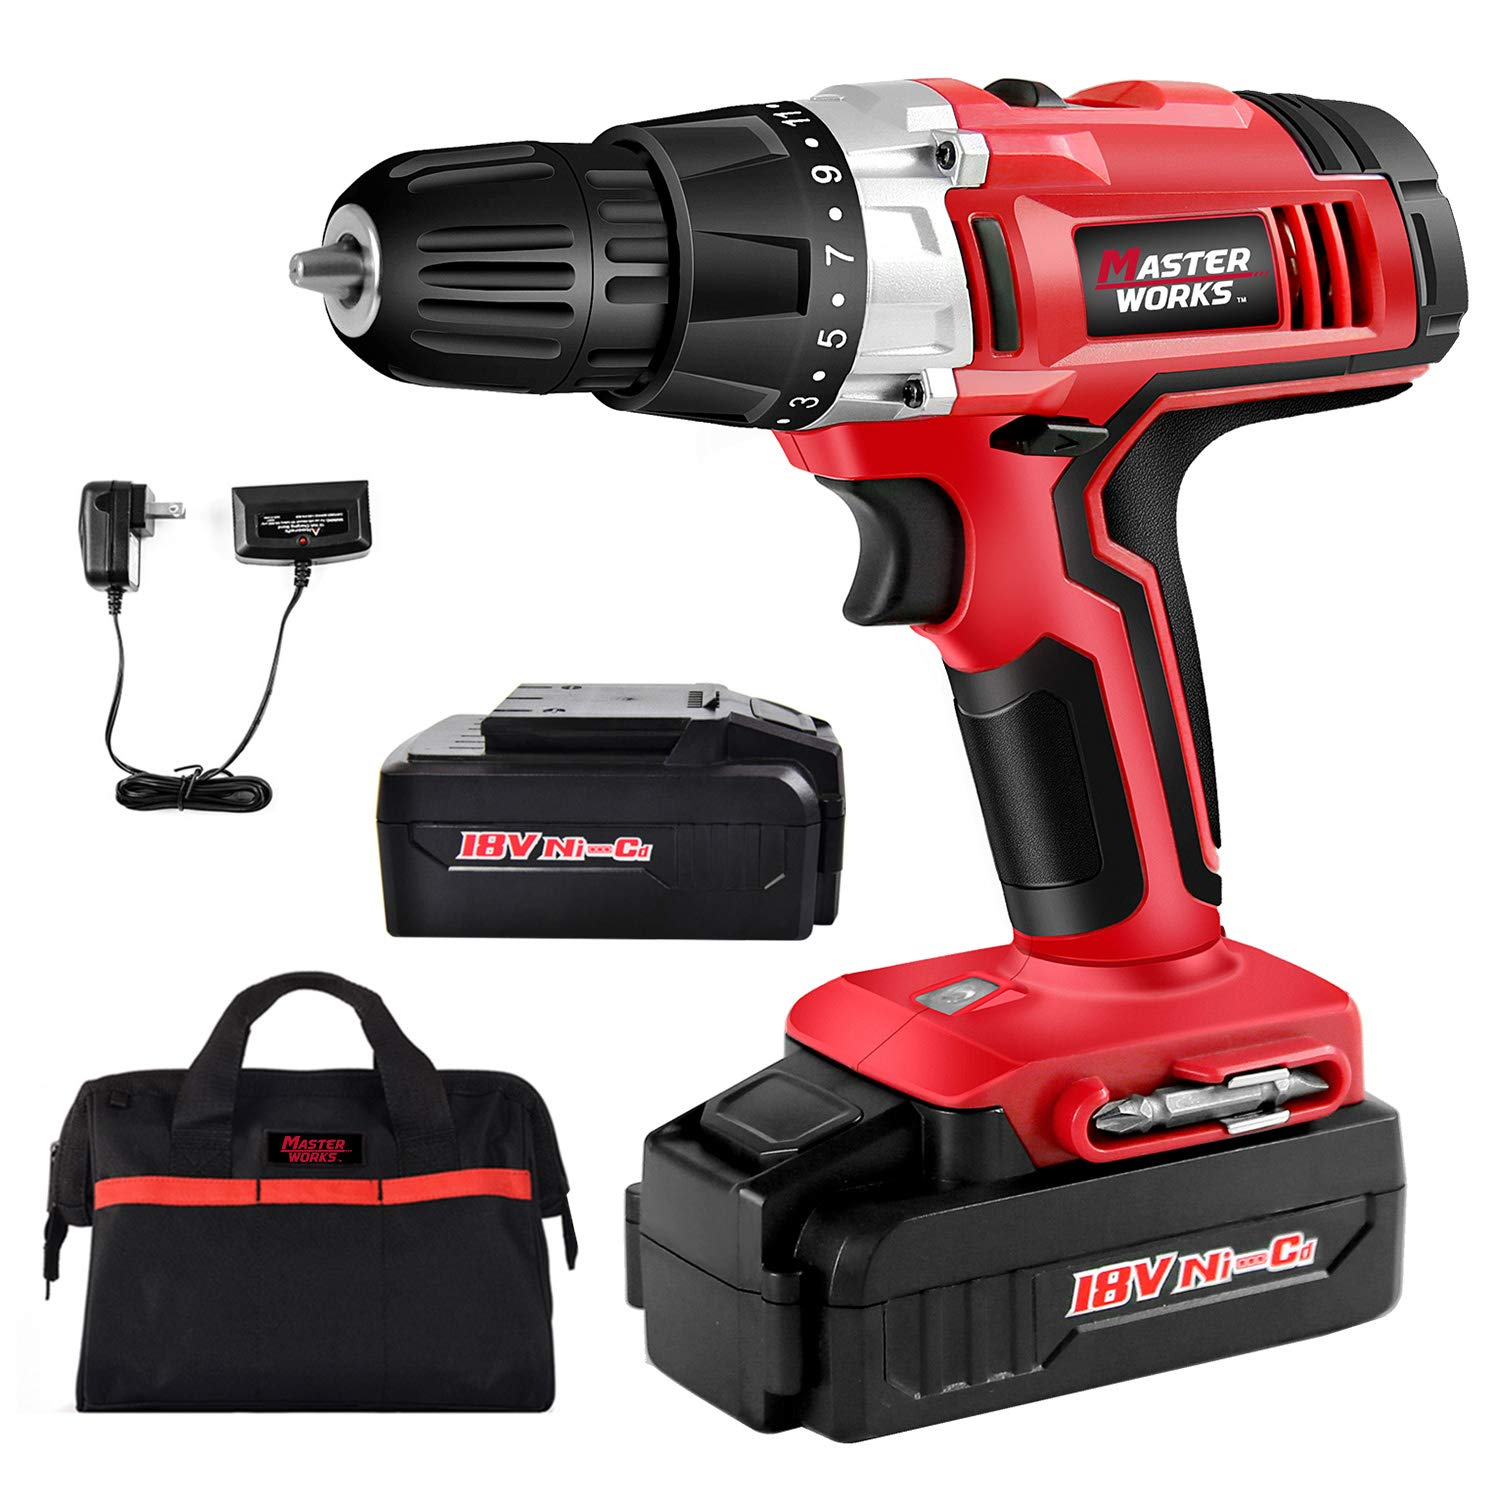 "Cordless Drill, 2 PACKS of Battery, 18V Power Drill Driver Kit with 3/8"" Keyless Chuck, Variable Speed, 265 In-lbs, 19+1 Position and LED Work Light, Masterworks MW312"